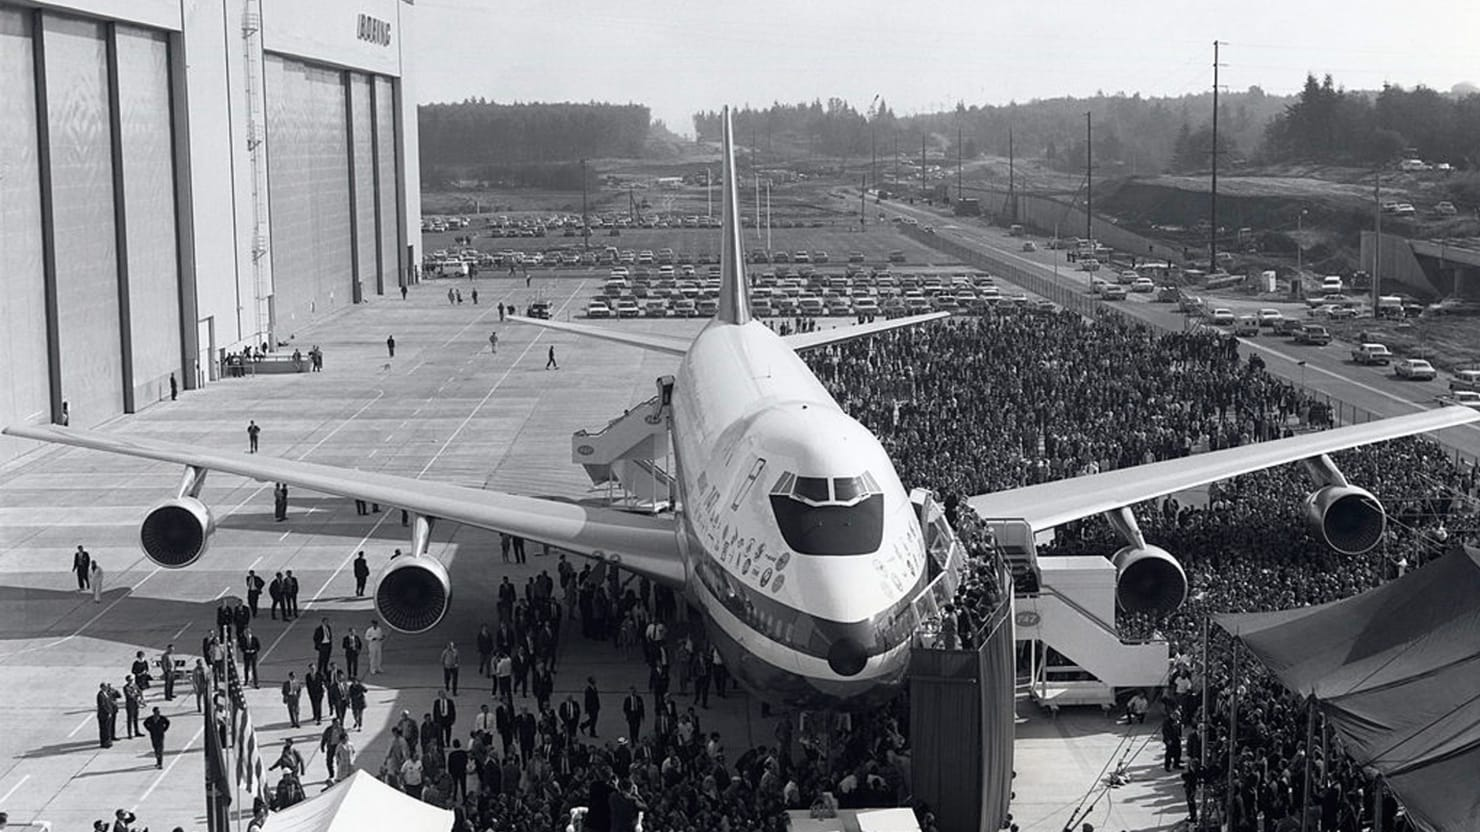 After 50 Years, Boeing Plans to Terminate Its Masterpiece, the 747